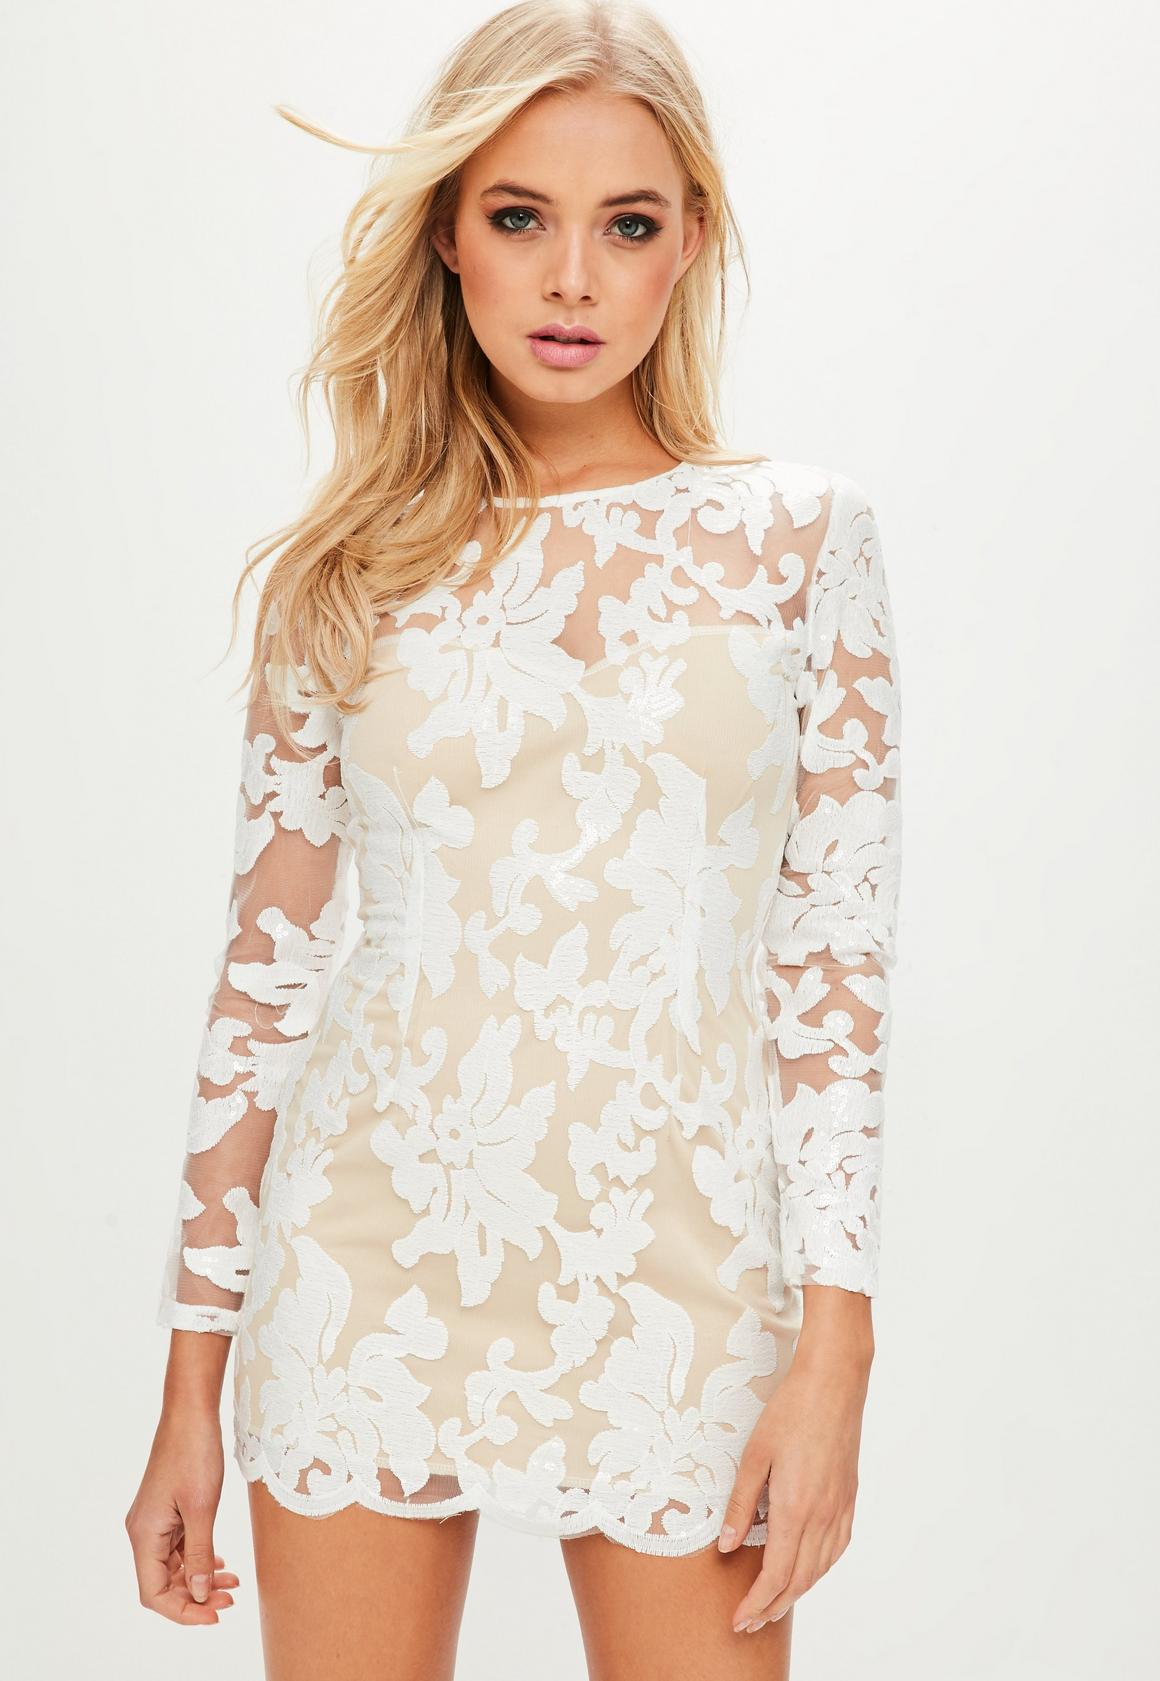 White flower print sequin dress missguided white flower print sequin dress previous next mightylinksfo